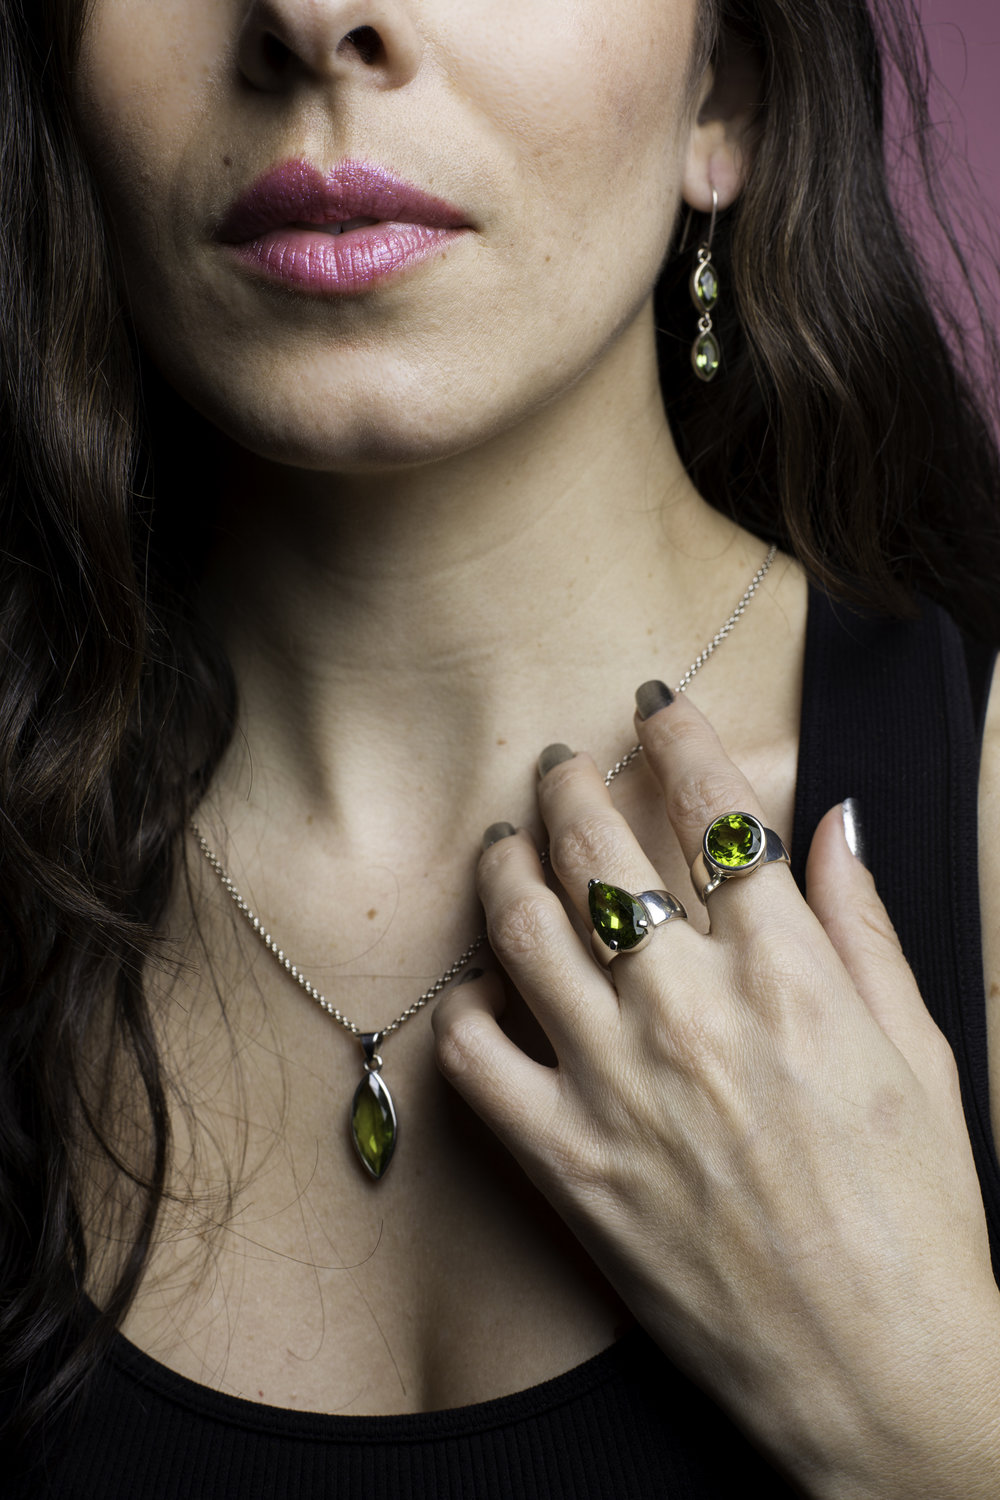 Wearing Made in  Earth Collection Peridot Drop Earrings, pendant, and rings. More on the stone's energetic properties below. All photography by Francisco Graciano.